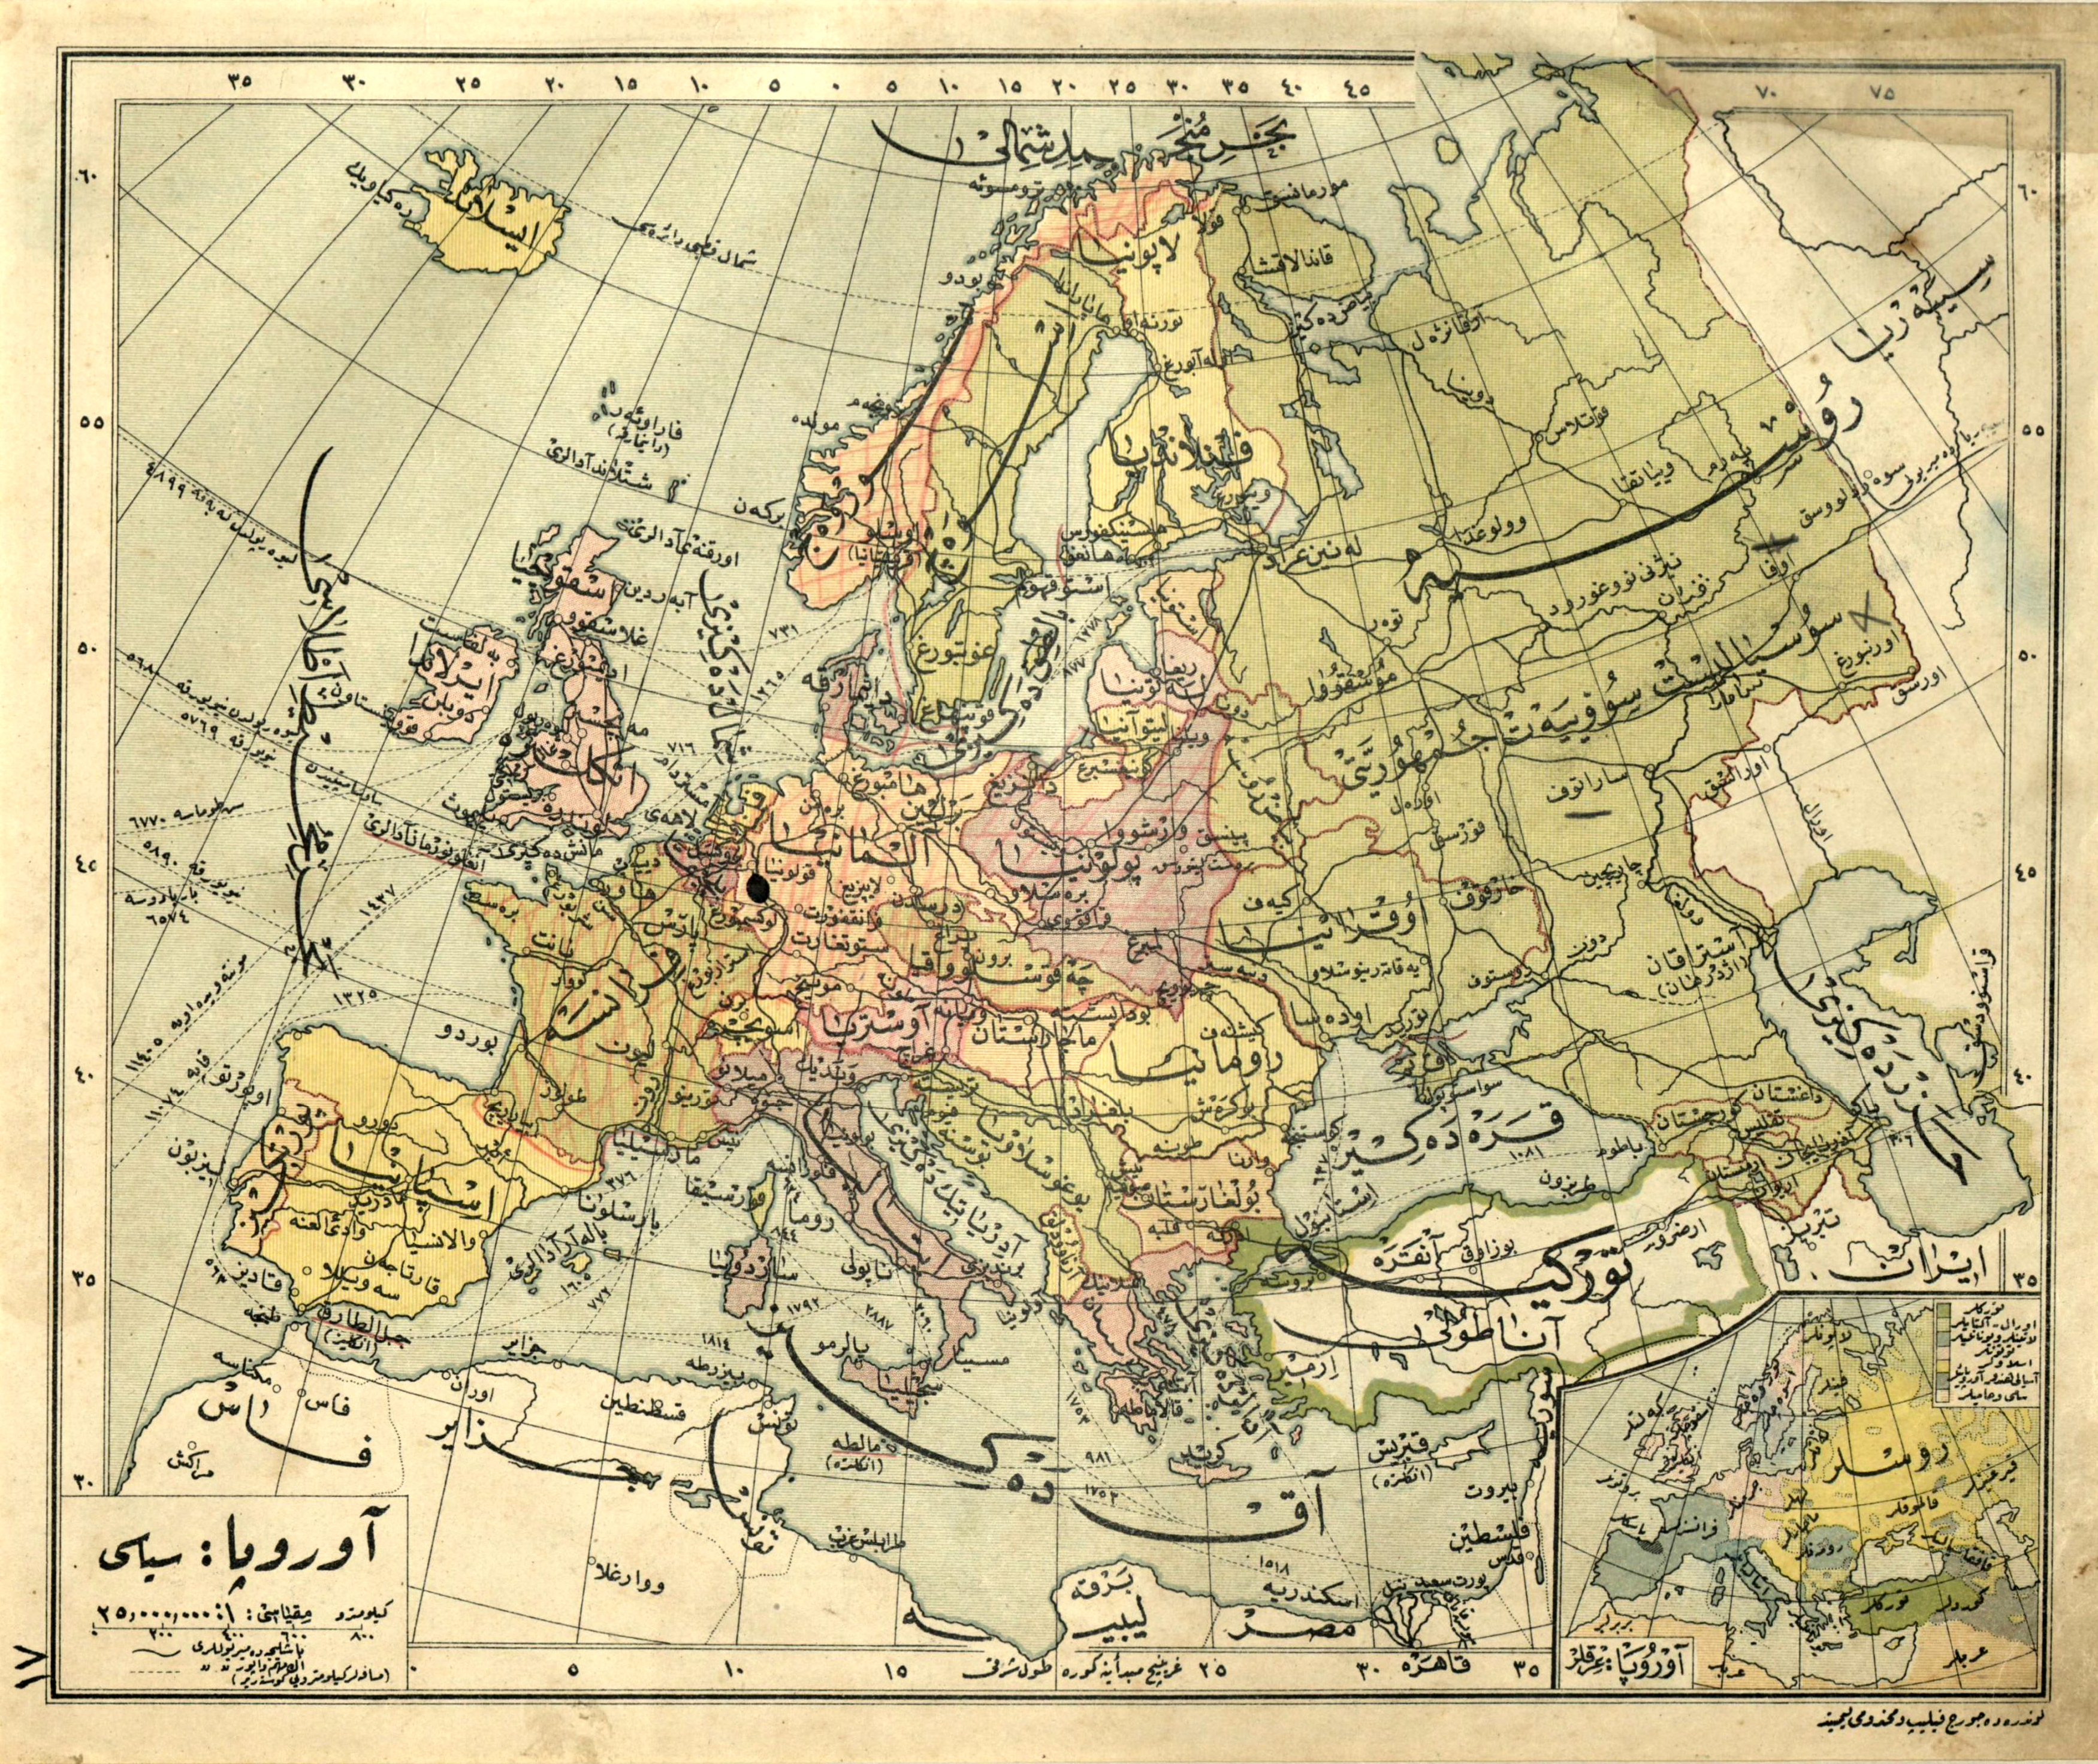 1920s Europe Map.Afternoon Map An Ottoman Map Of Nazi Europe